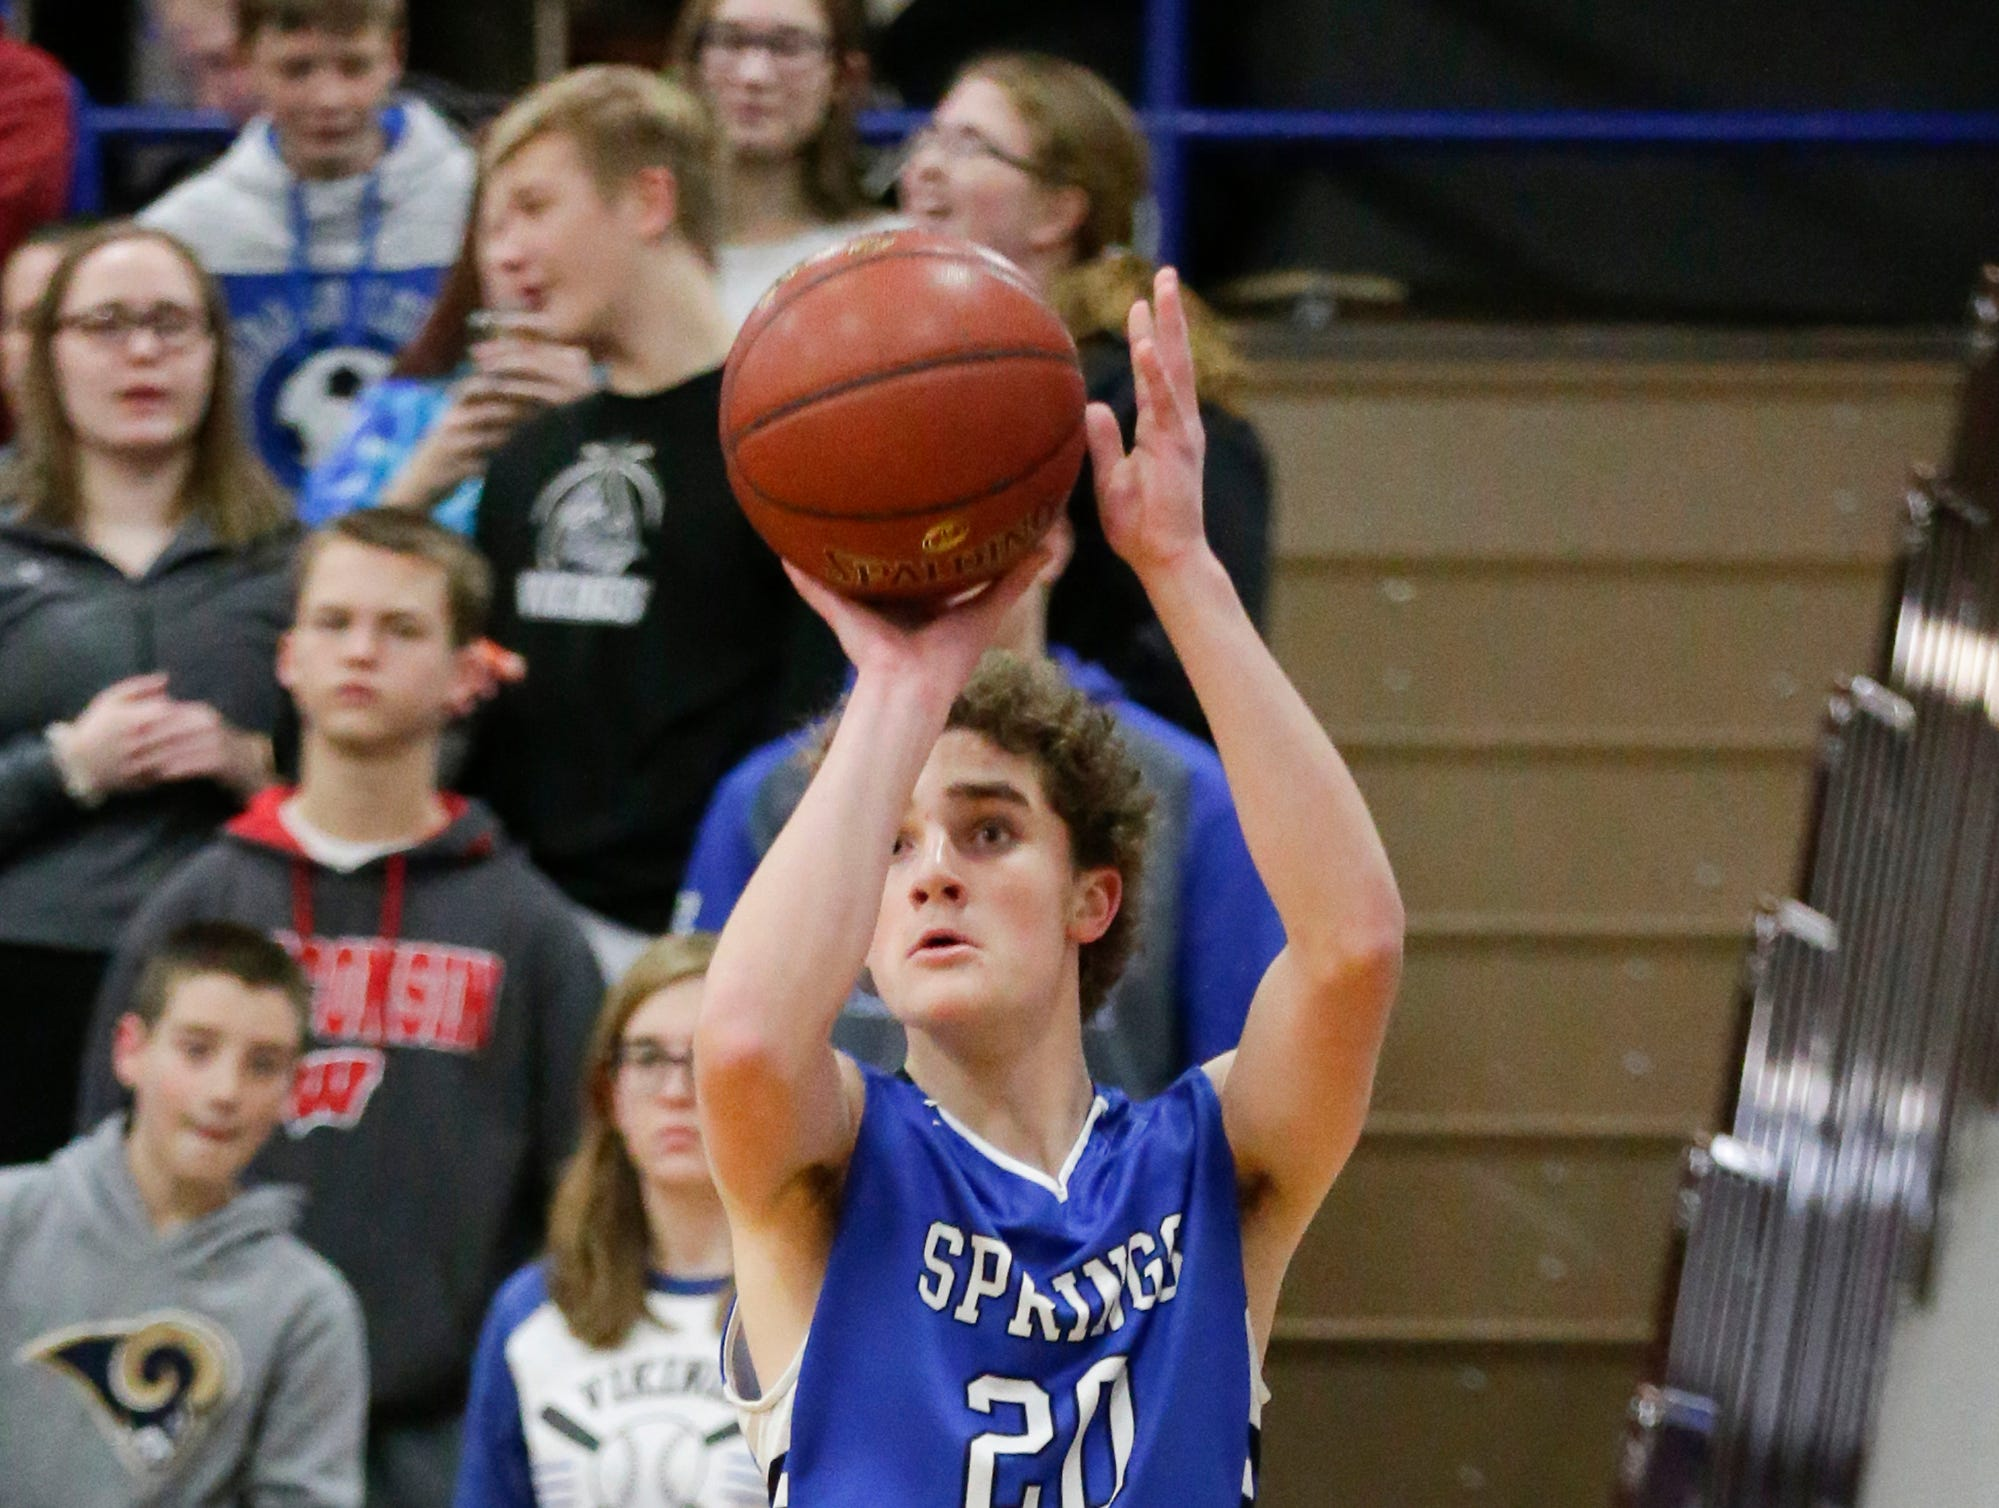 St. Mary's Spring Academy boys basketball's David Mueller attempts a shot against Winnebago Lutheran Academy Tuesday, January 8, 2019 during their game in Fond du Lac. Winnebago Lutheran Academy won the game 69-66. Doug Raflik/USA TODAY NETWORK-Wisconsin